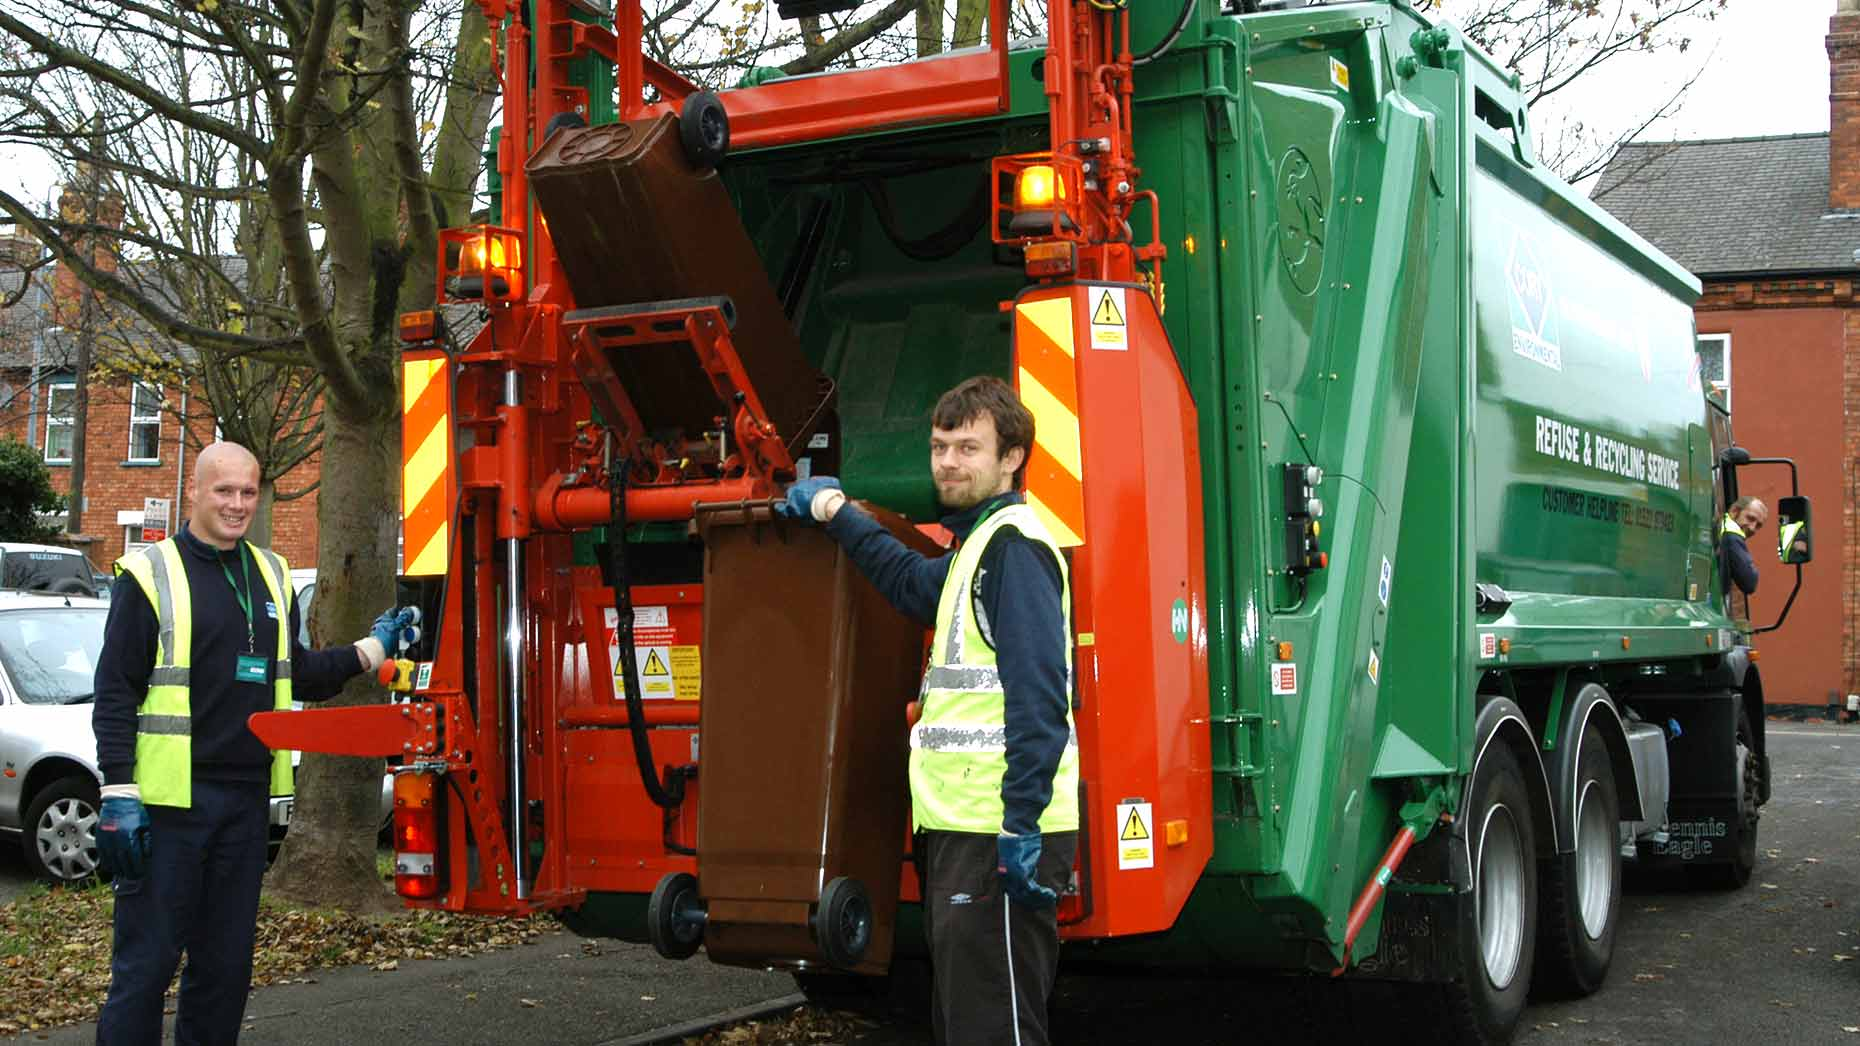 Gravesham council update on waste and recycling services